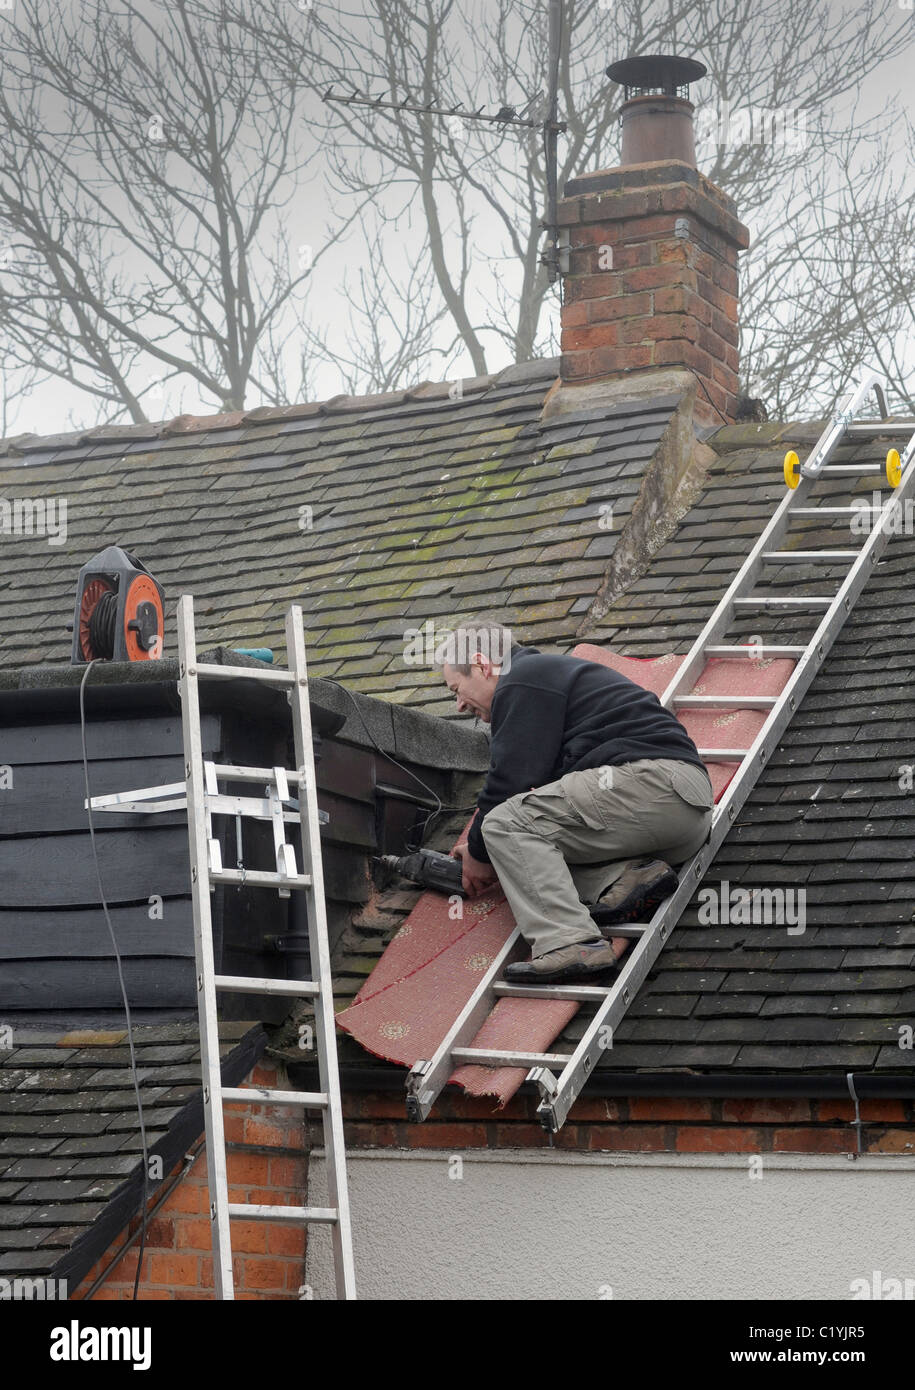 WORKMAN WORKING OFF LADDERS ON DOMESTIC HOUSE RE ROOF REPAIRS DIGITAL SWITCHOVER NEW AERIALS SIGNAL ANALOGUE SWITCH - Stock Image